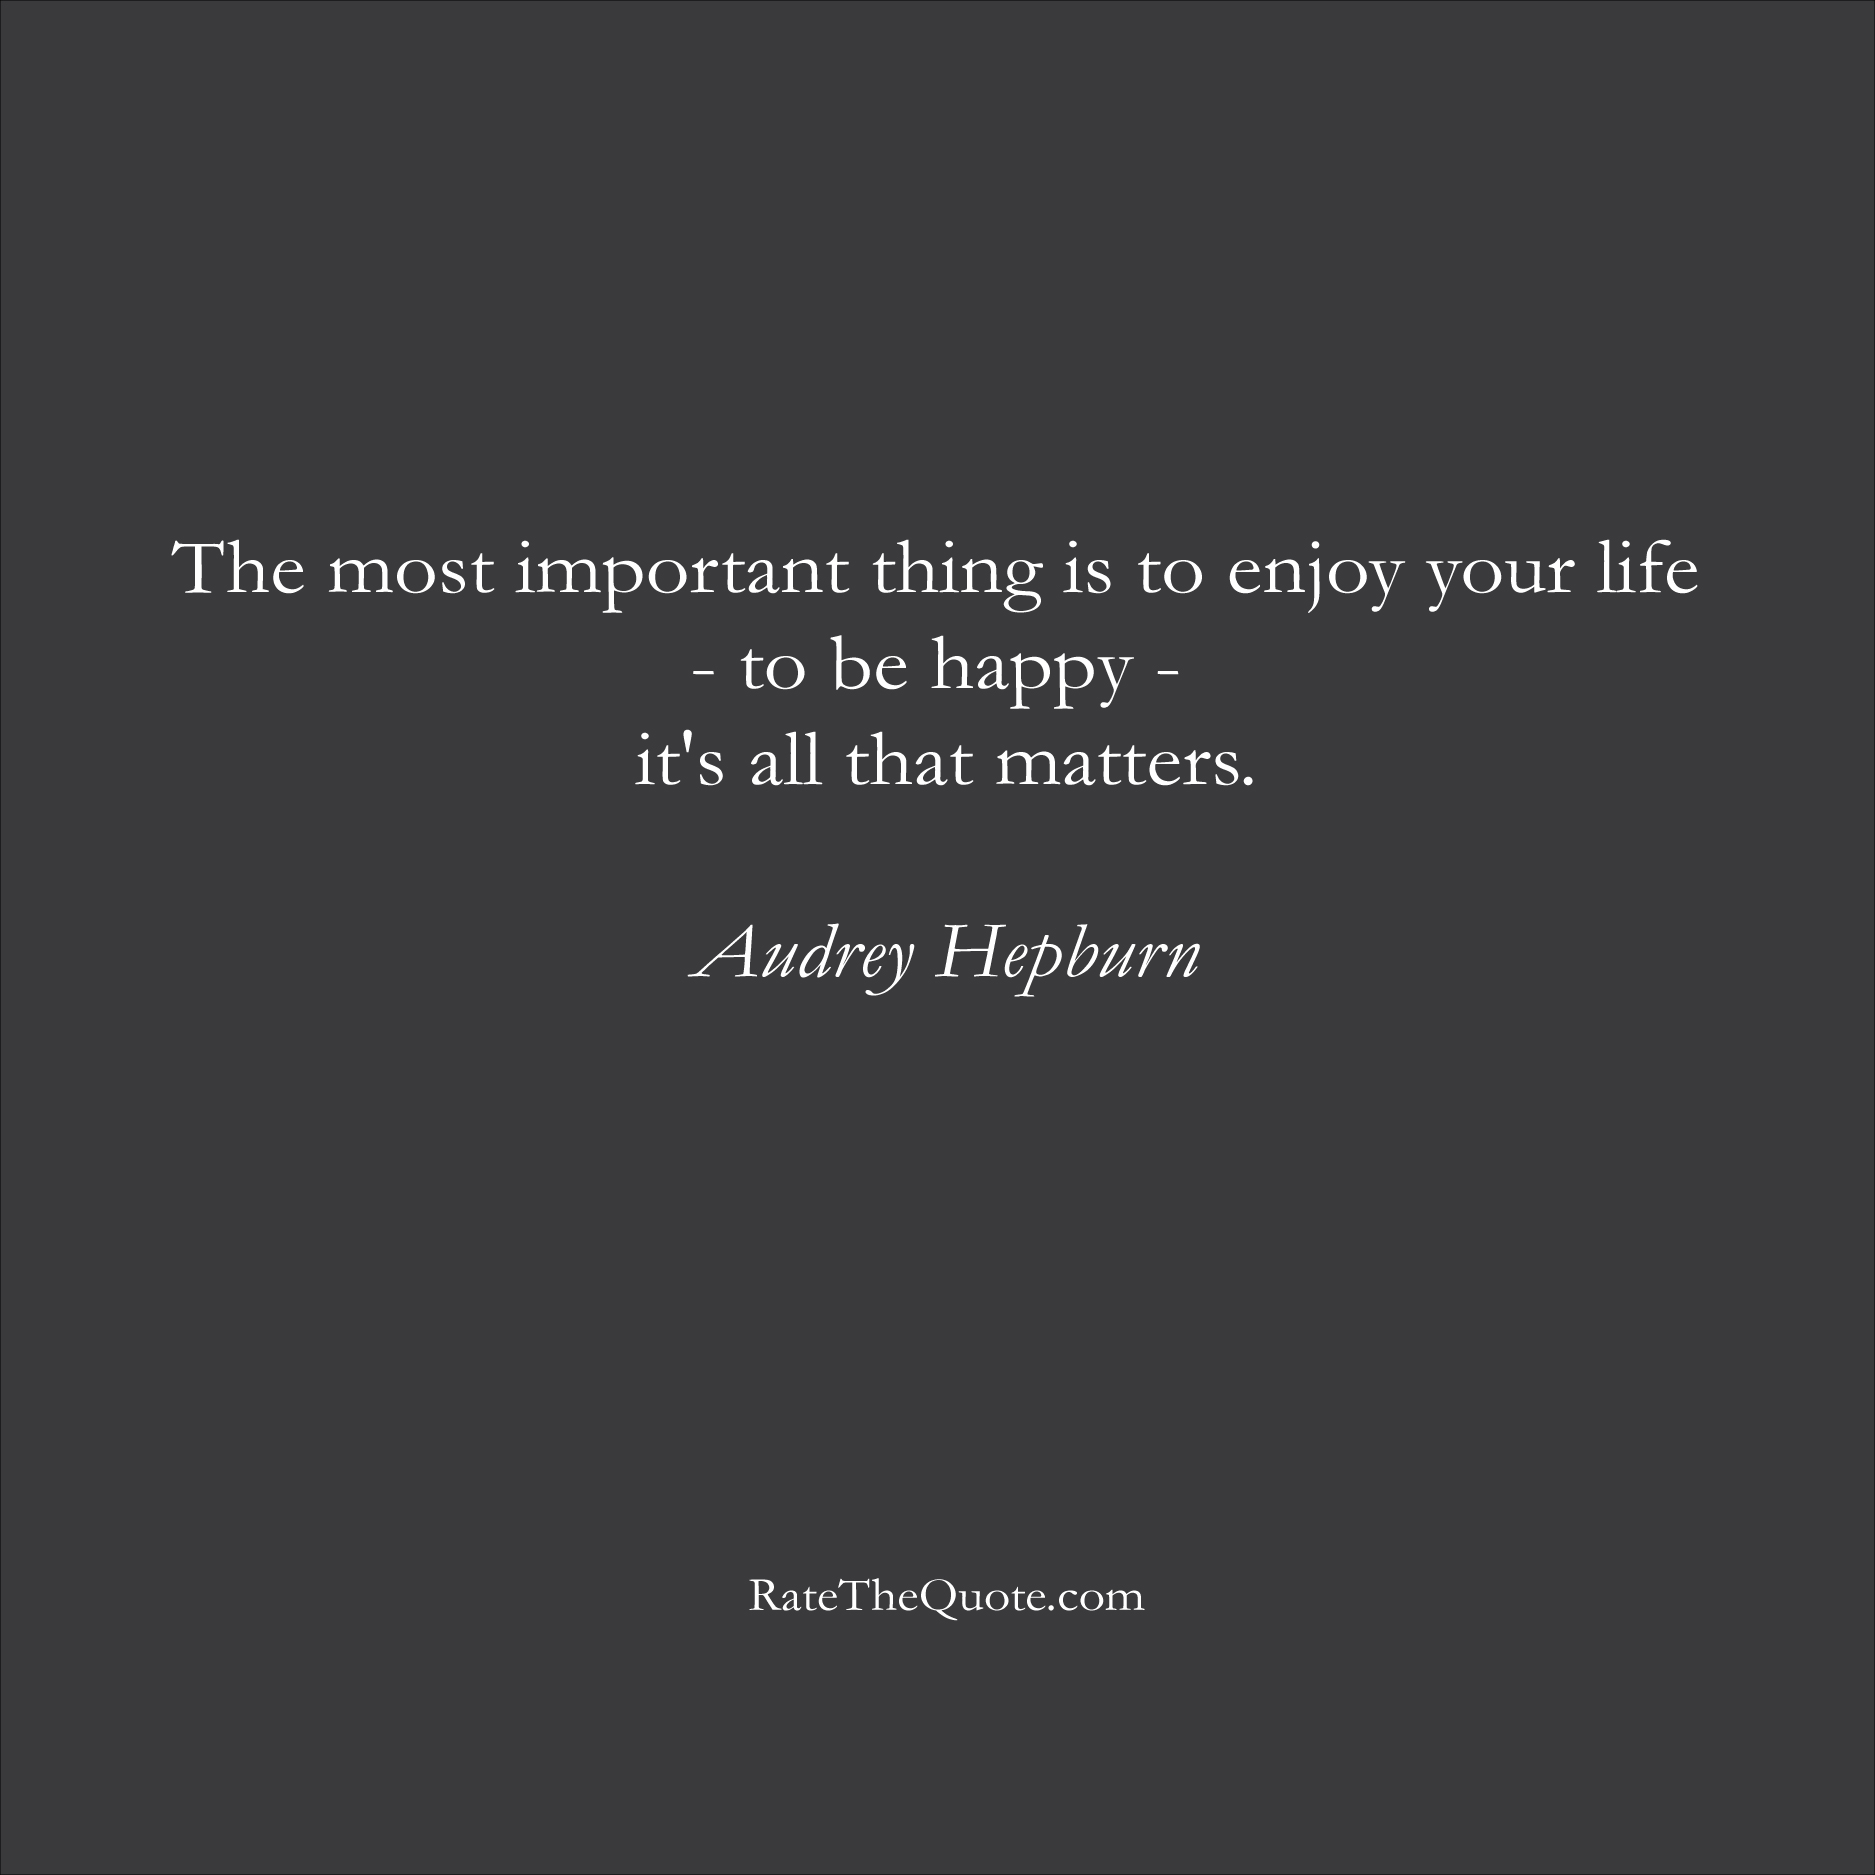 Audrey Hepburn Quotes The most important thing is to enjoy your life - to be happy - it's all that matters.